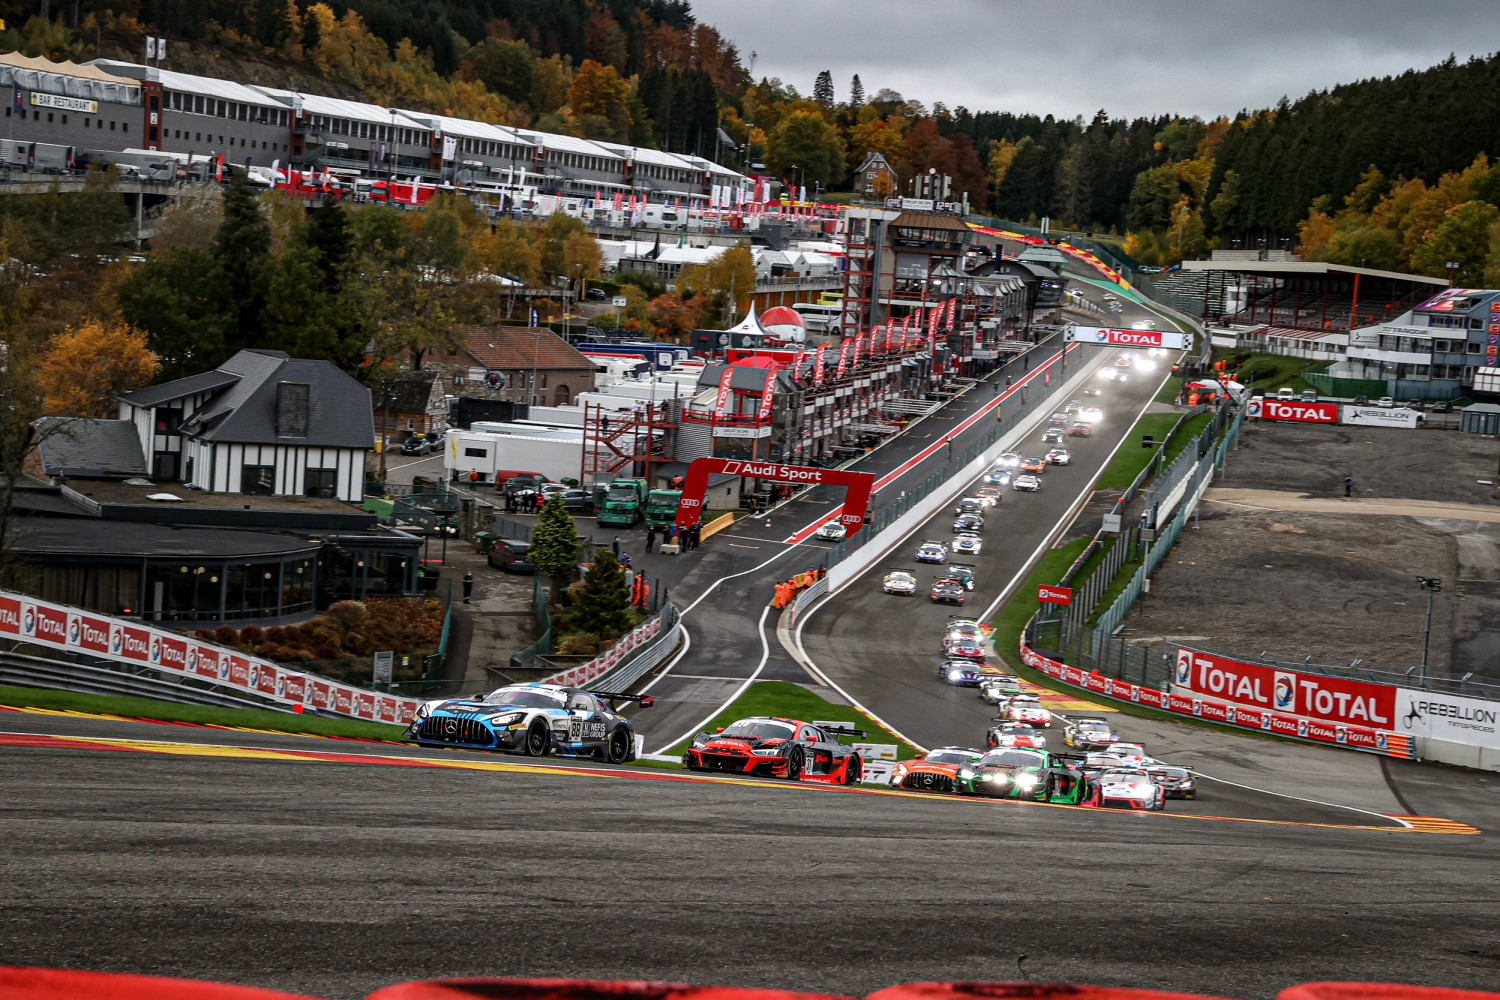 2021 Intercontinental GT Challenge Powered by Pirelli season to comprise three rounds